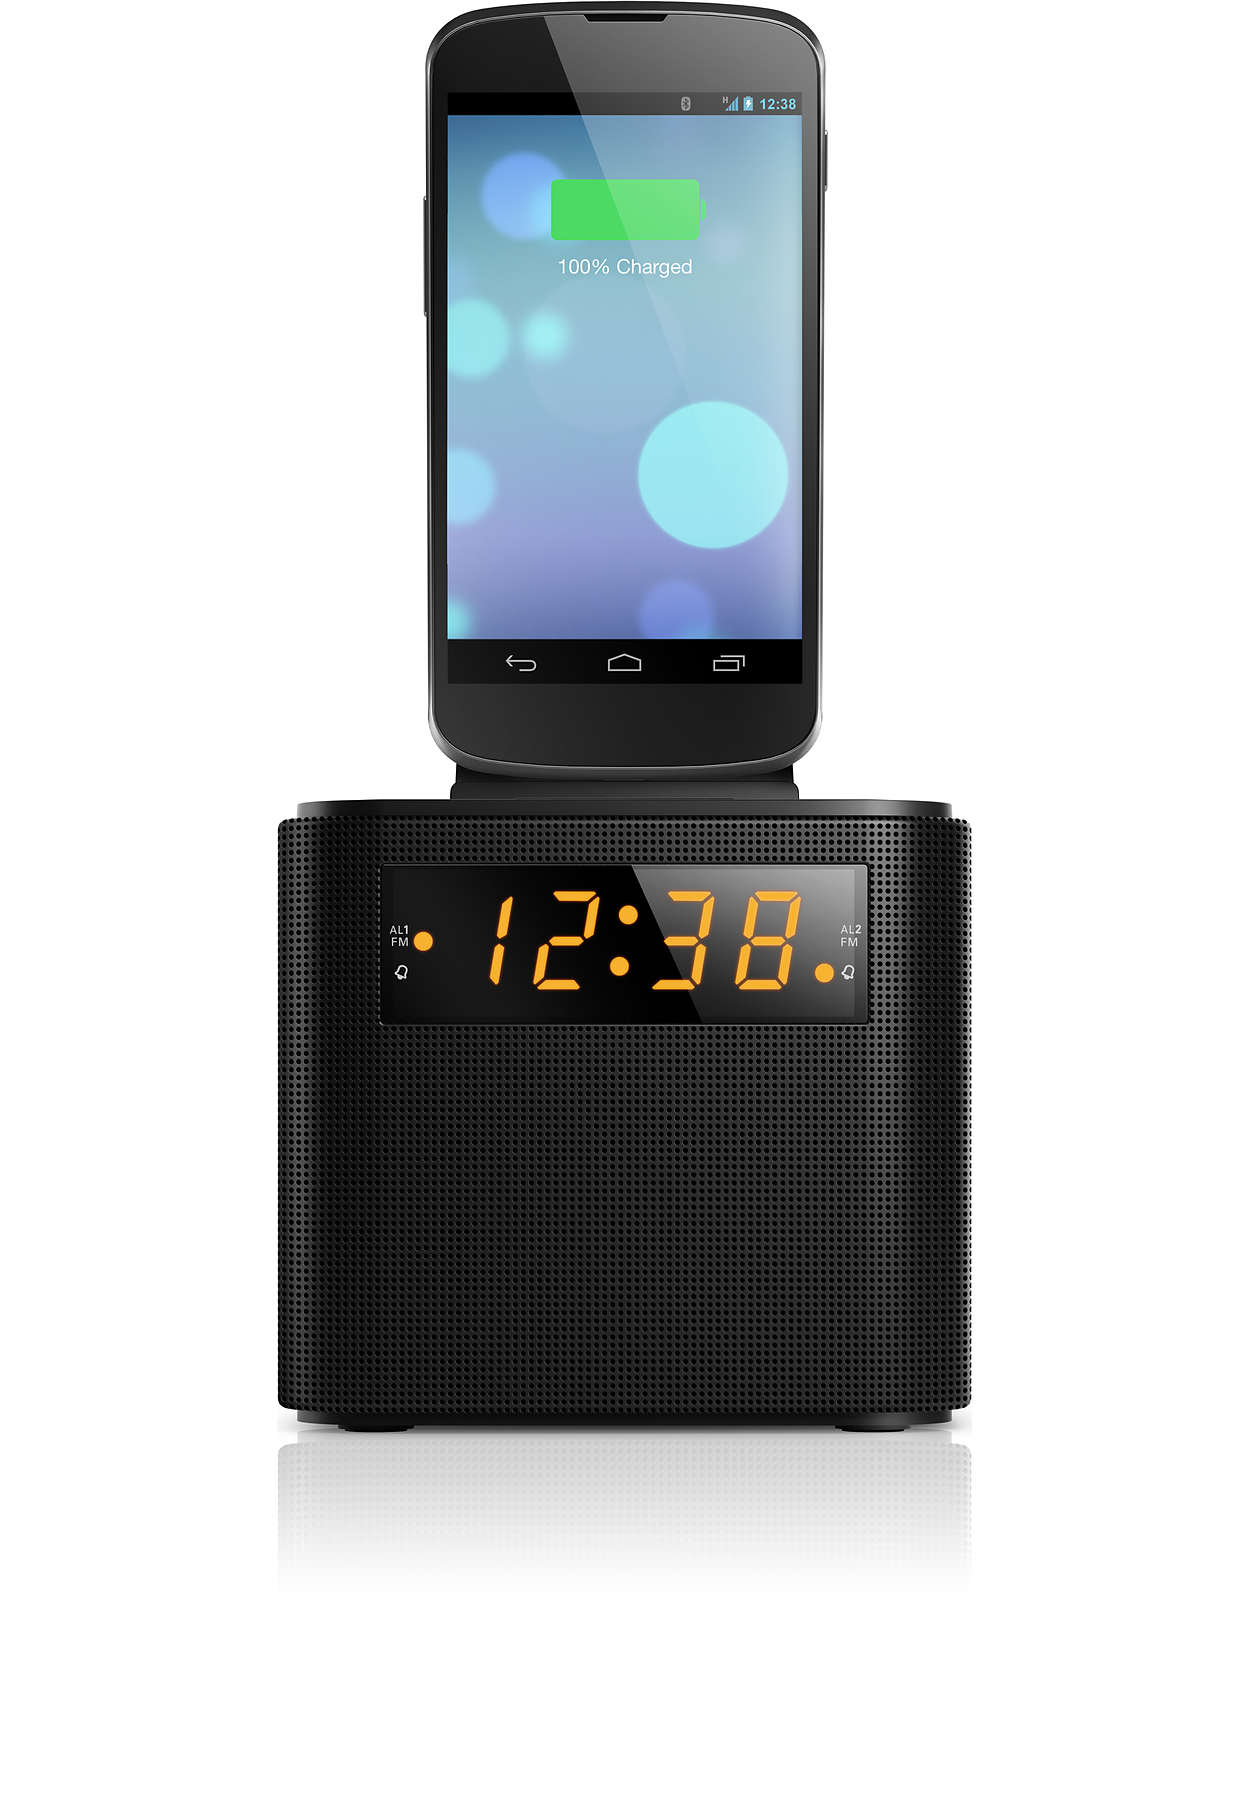 Clock Radio Aj3200 05 Philips Kit Digital Fm Display Frequensi Counter Untuk Tuner Wake Up To And A Smartphone Fully Charged